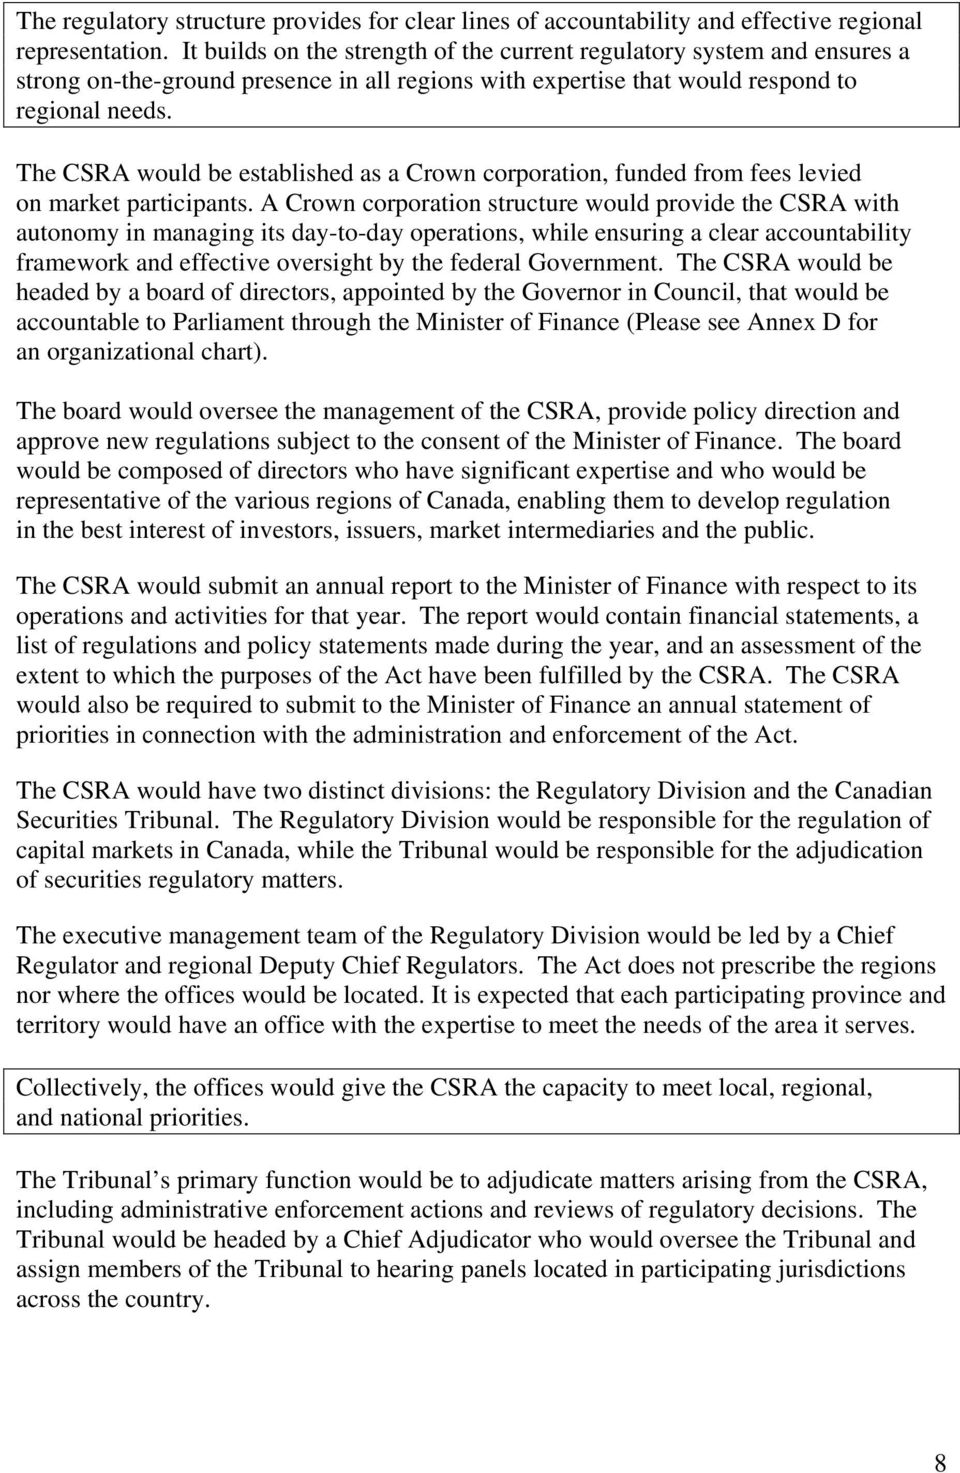 The CSRA would be established as a Crown corporation, funded from fees levied on market participants.